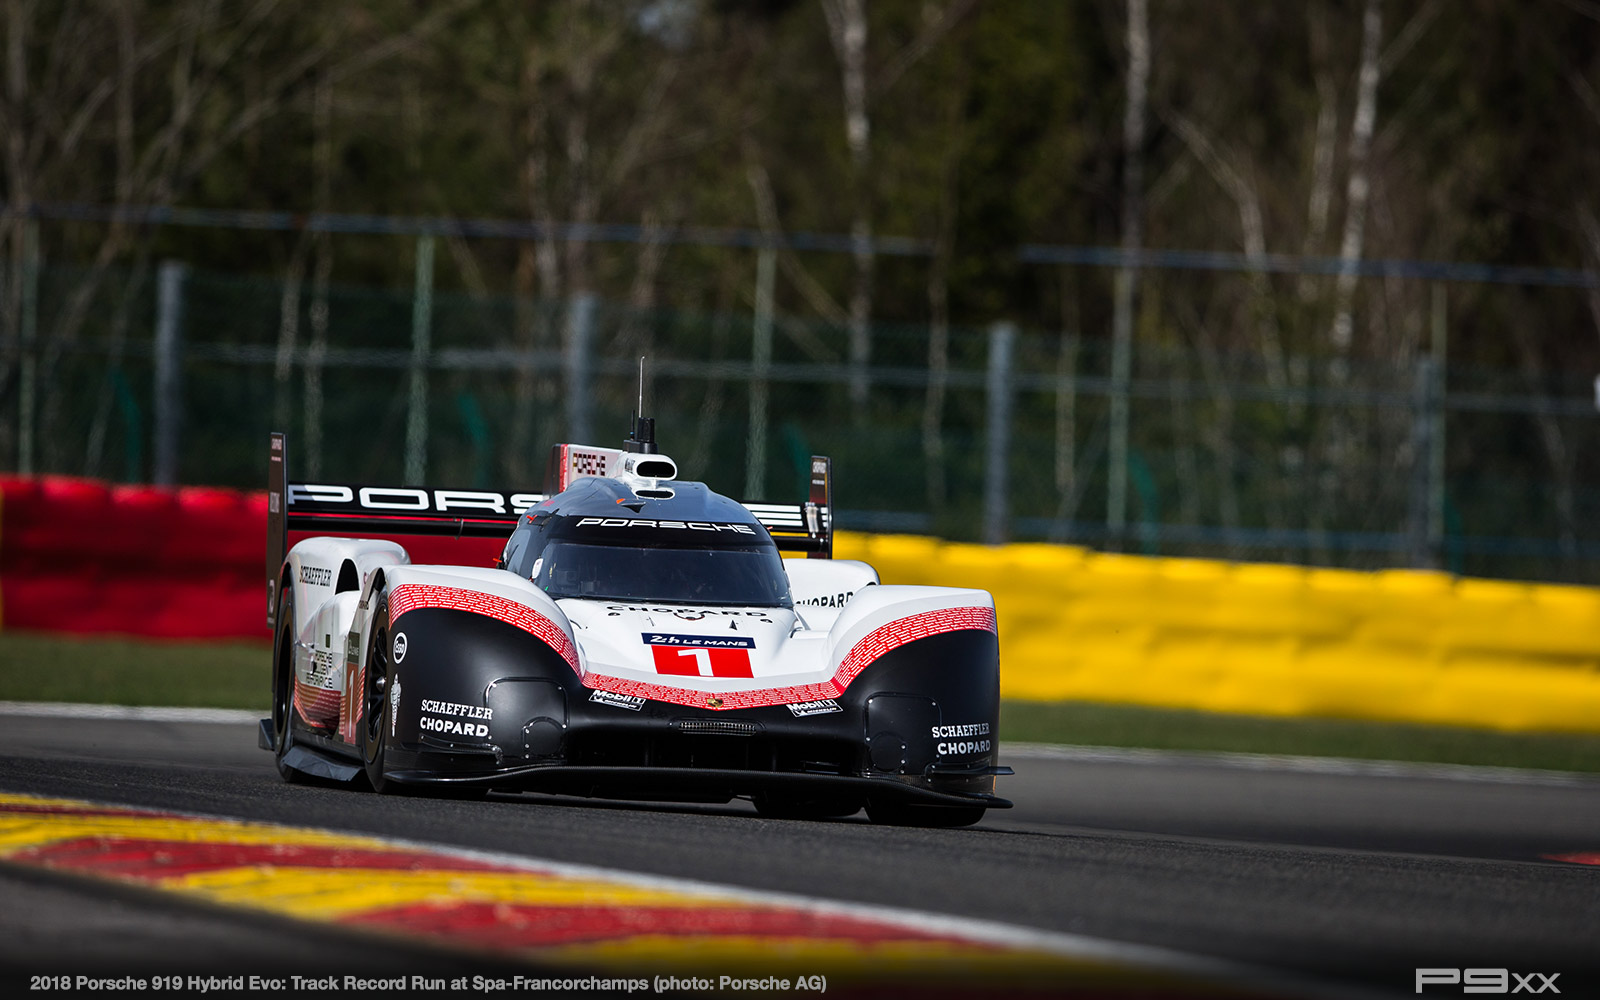 porsche 919 evo shatters f1 lap record at spa p9xx. Black Bedroom Furniture Sets. Home Design Ideas